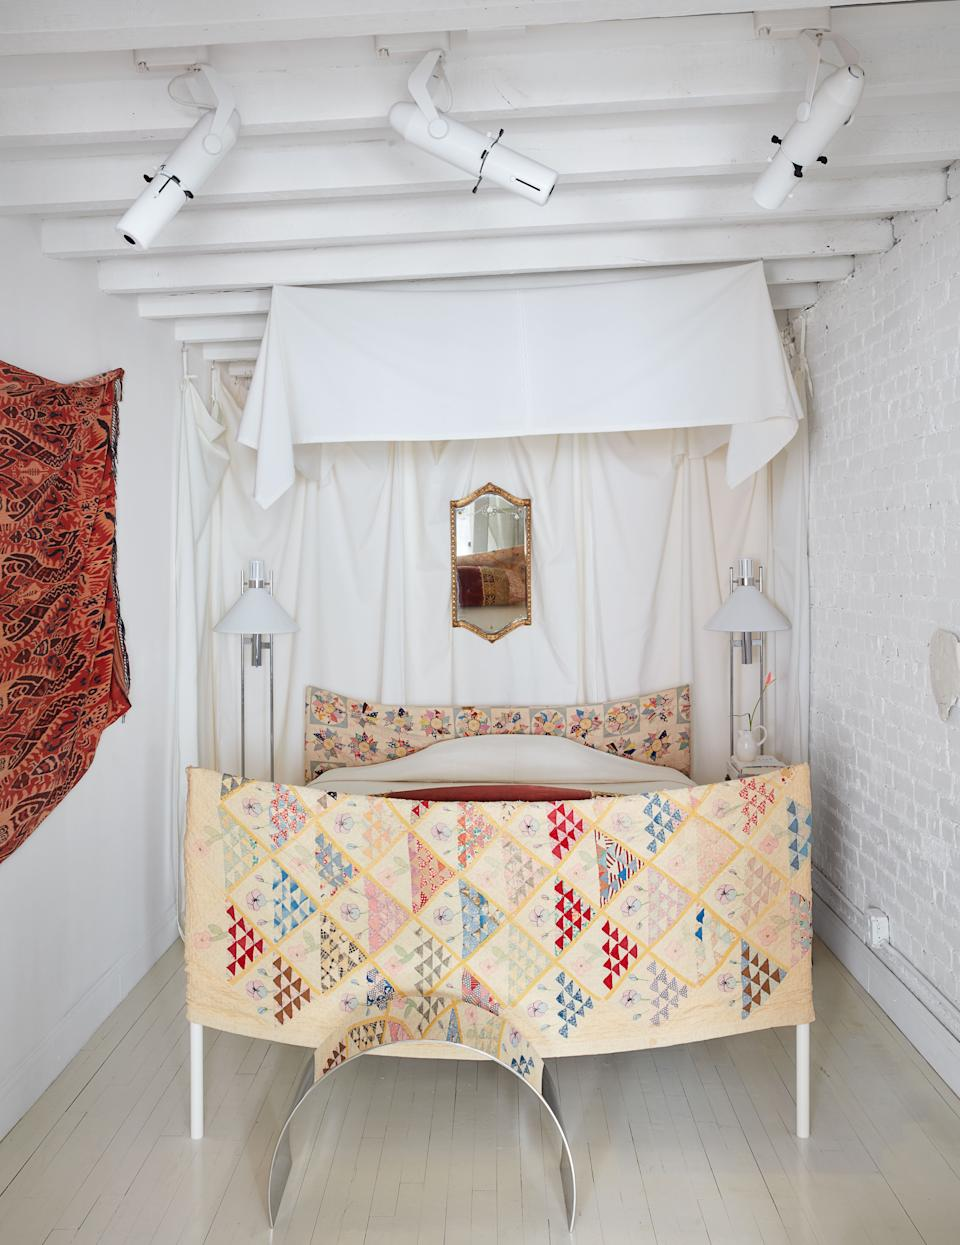 Vintage Robert Sonneman floor lamps flank the bed, which he slipcovered in a patchwork quilt.